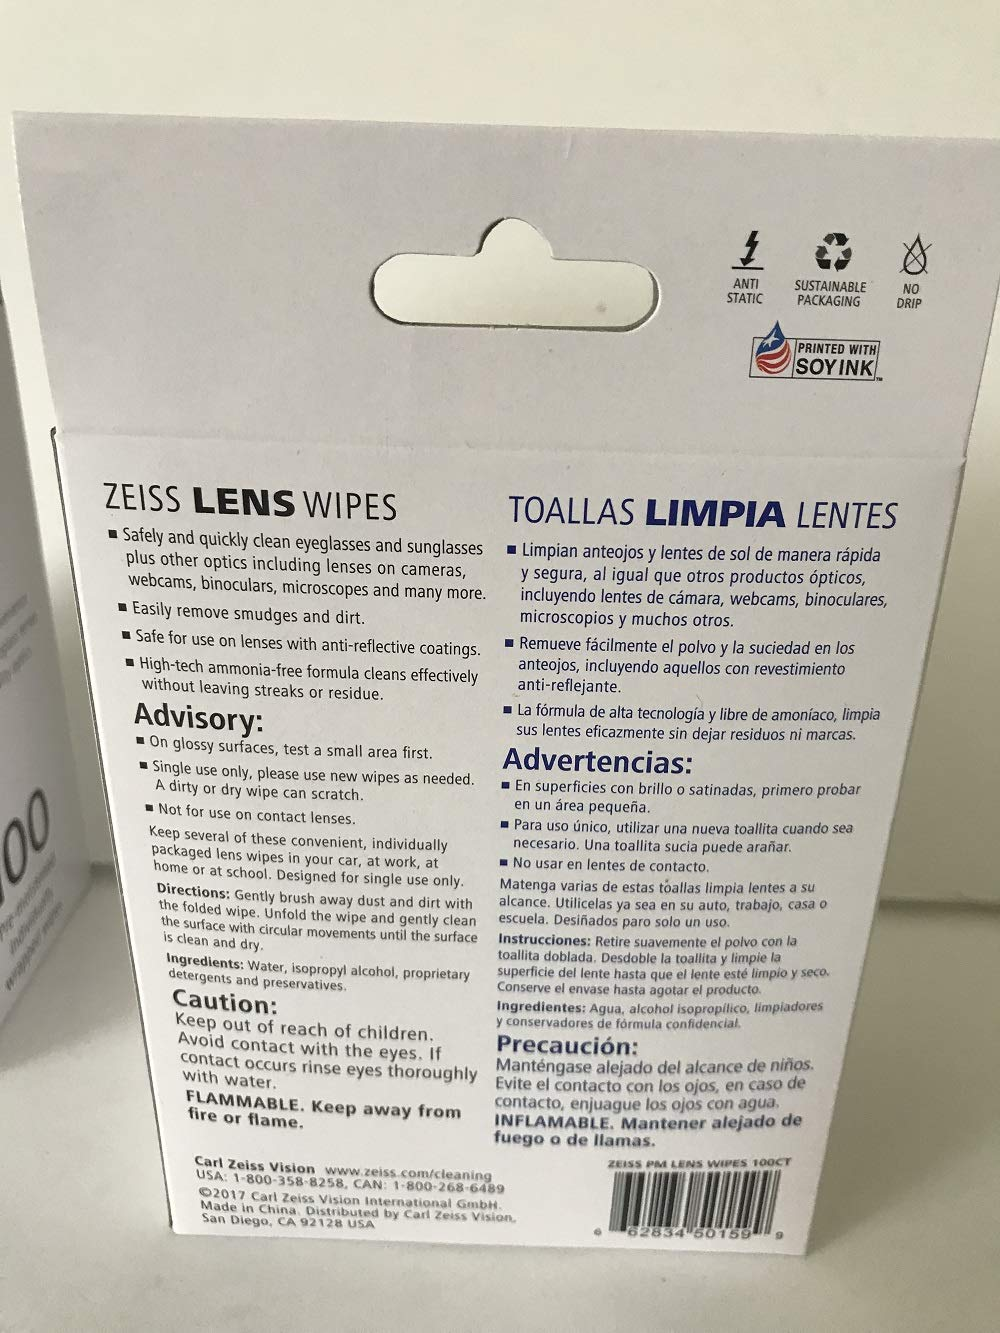 Amazon.com: Zeiss Pre-Moistened Lens Cleaning Wipes - Cleans Bacteria and Germs without Streaks for Eyeglasses and Sunglasses, 2 Pack (100CT): Health ...